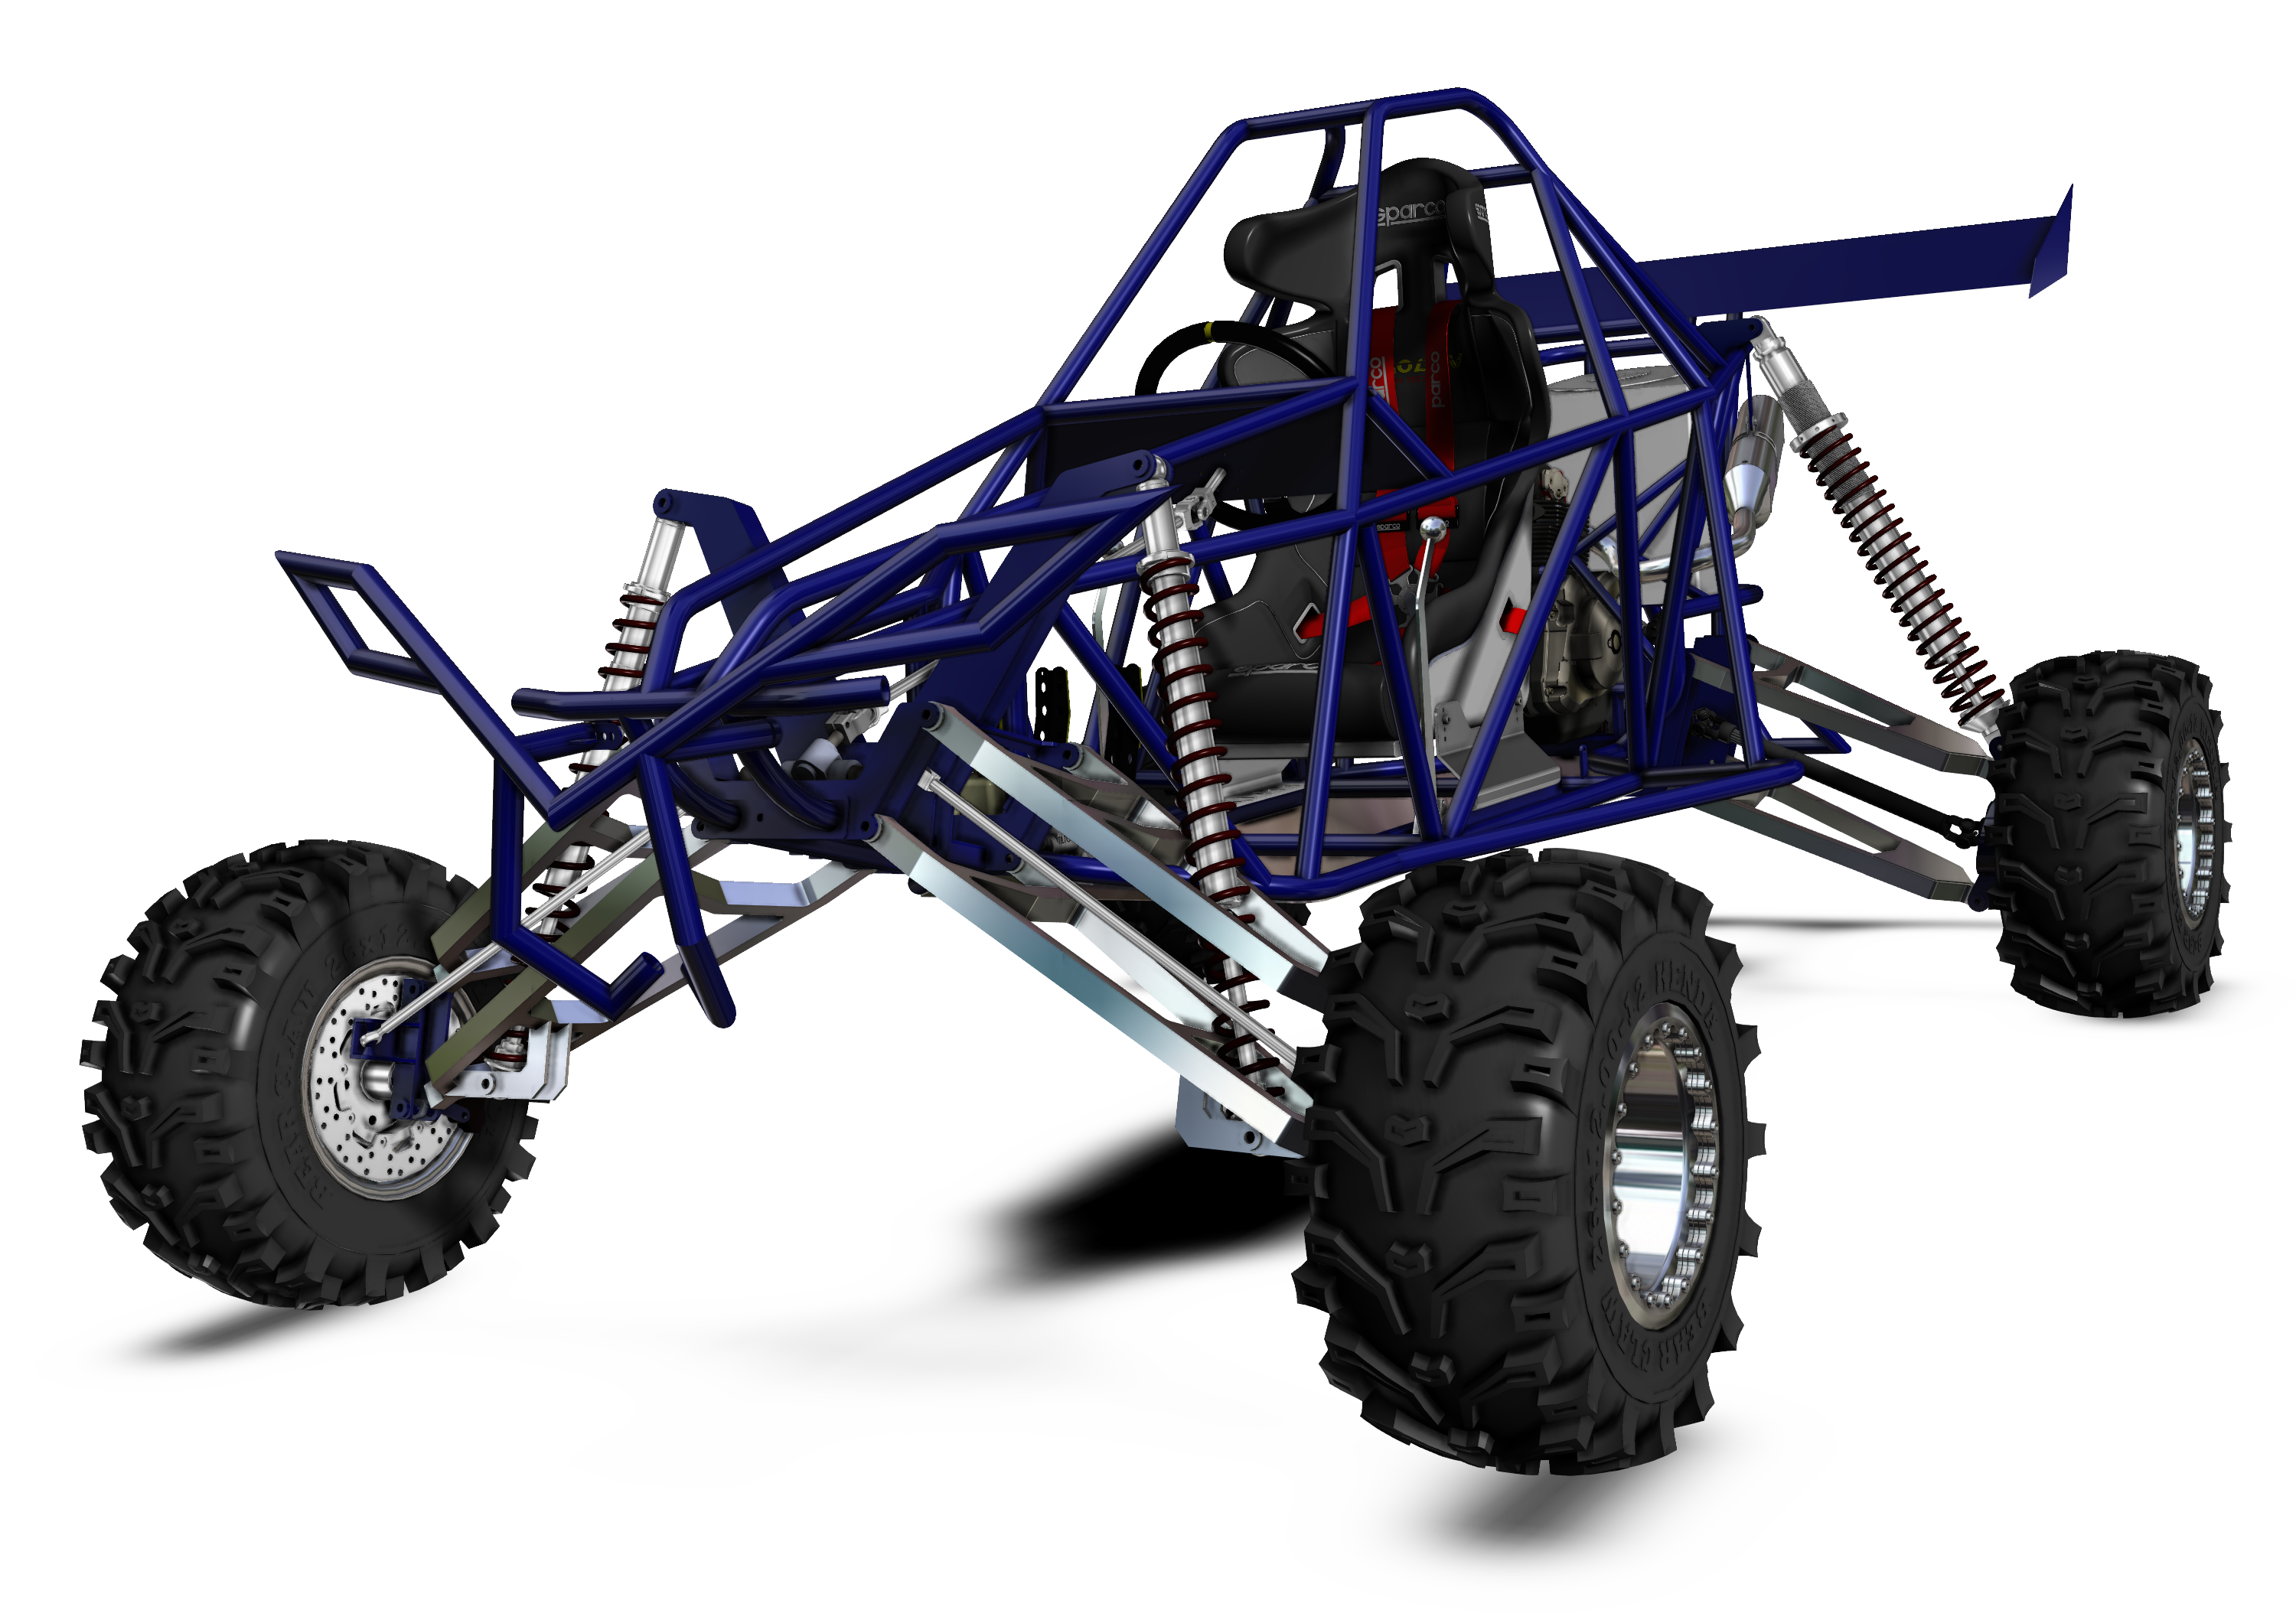 Cross Buggy Plans